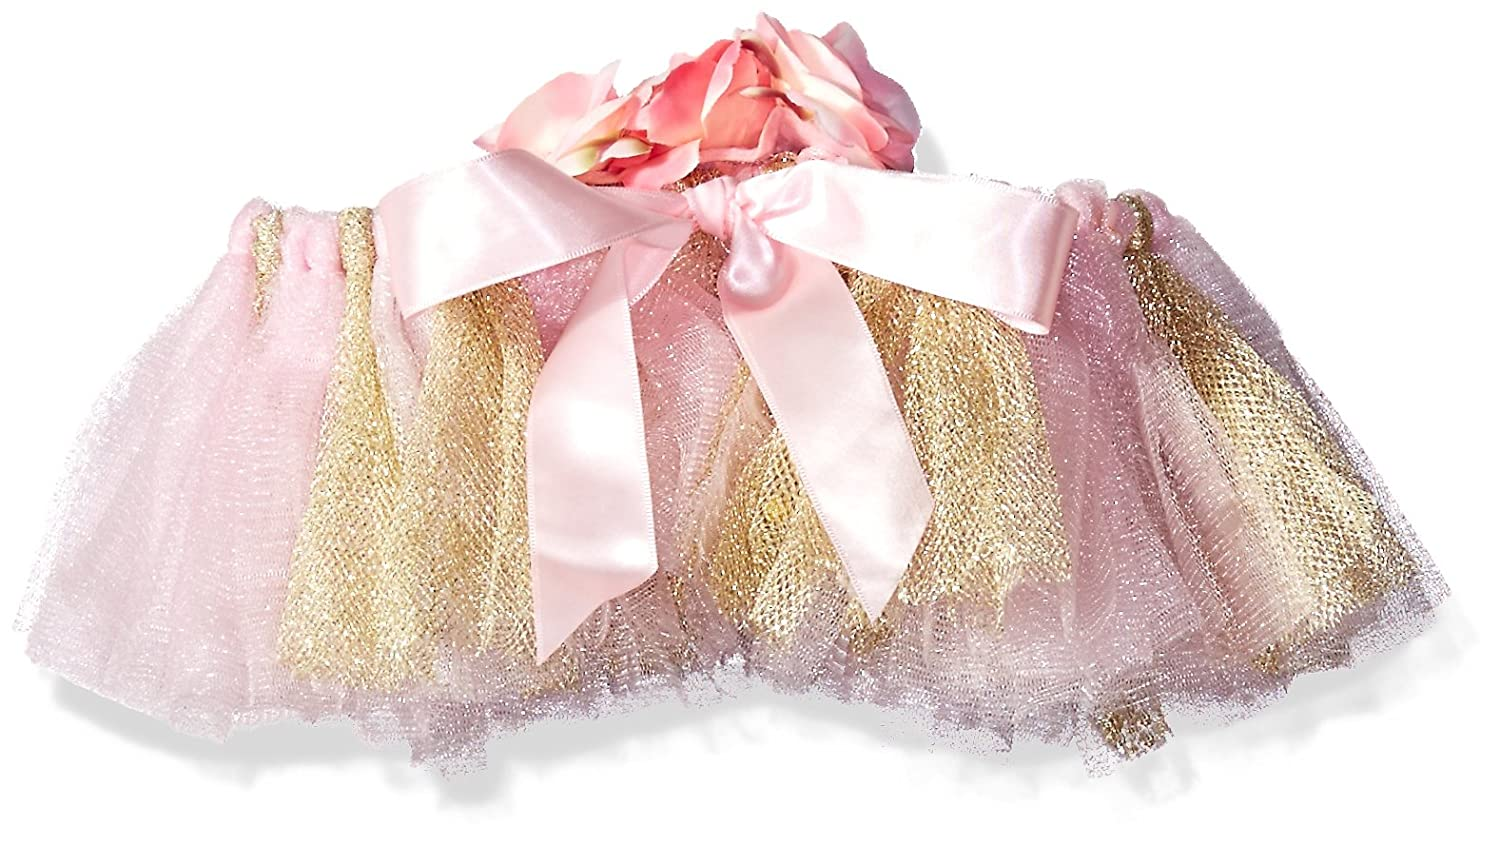 Amazon.com: Toby & Company Girls Tutu & Flower Sequin Headband 2 Pc ...